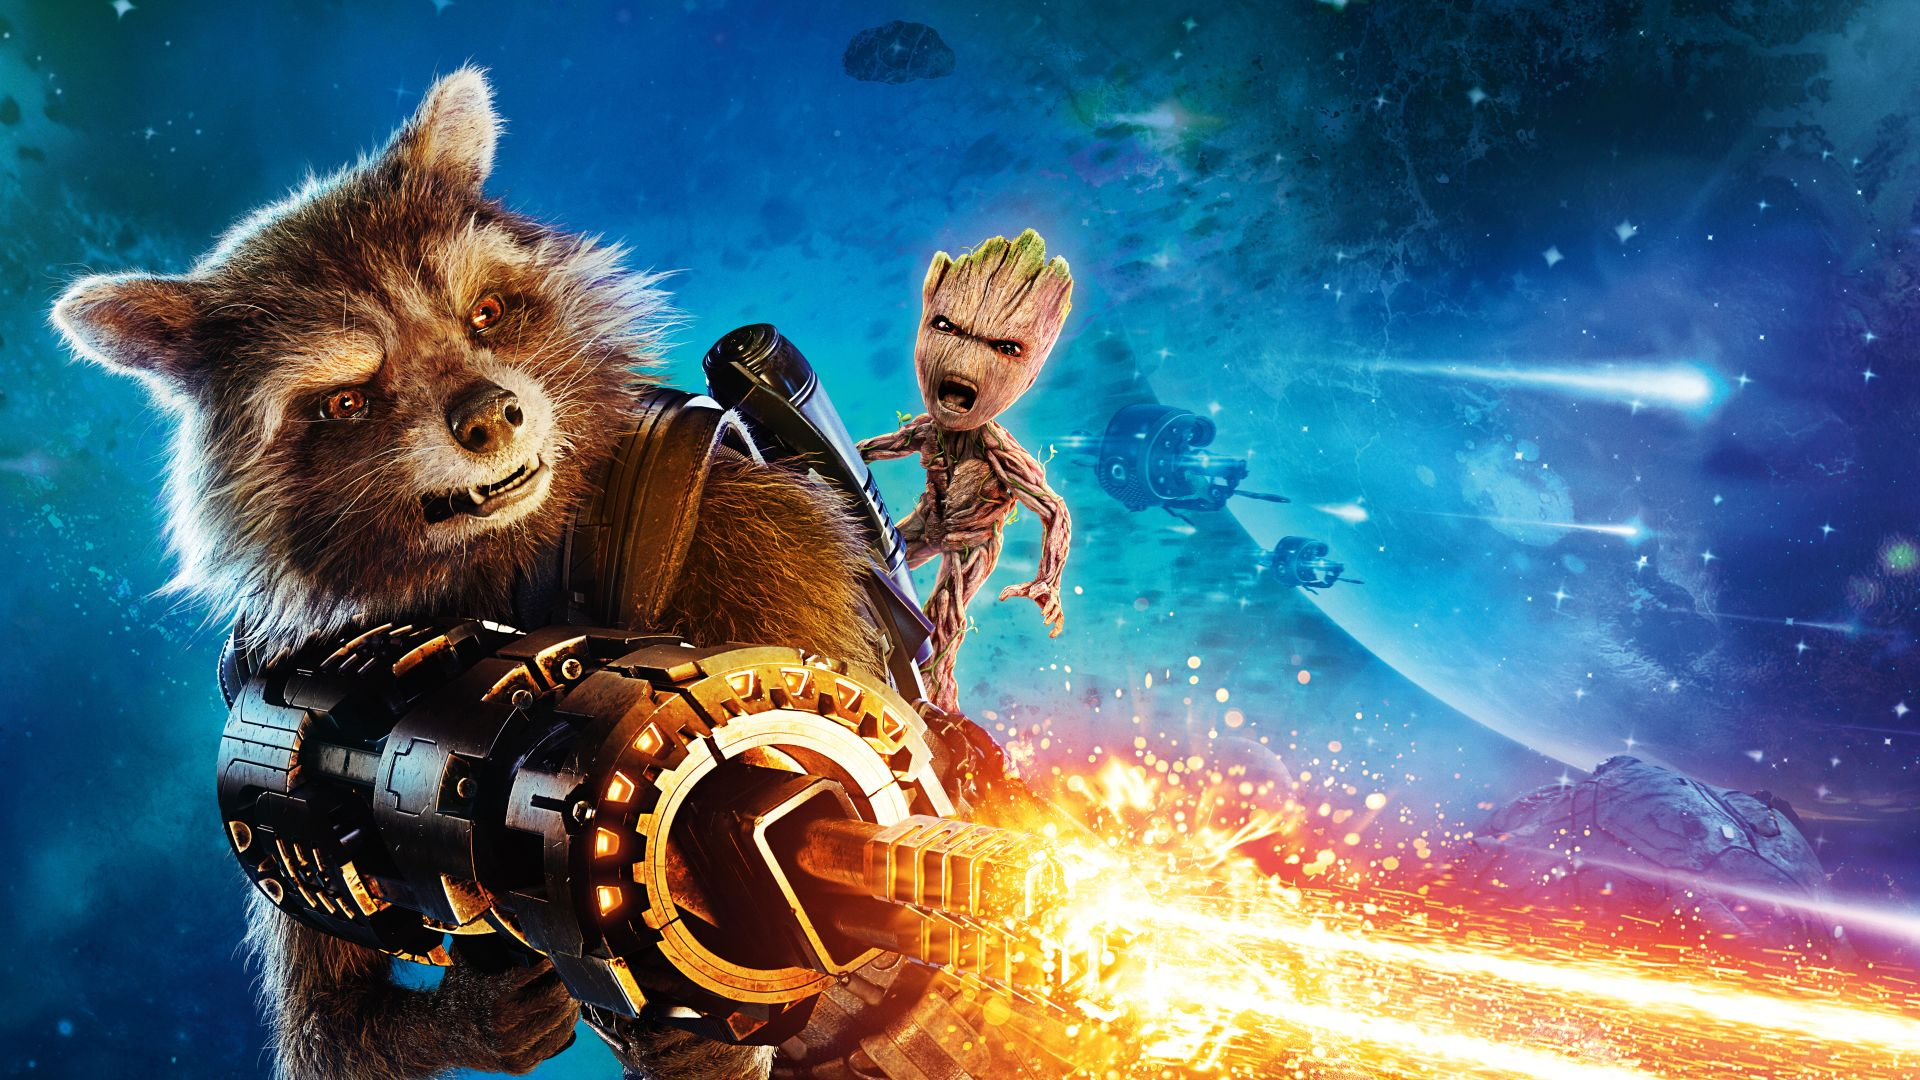 Guardians of the Galaxy Vol. 2, Baby Groot, Rocket, gun, best movies (horizontal)